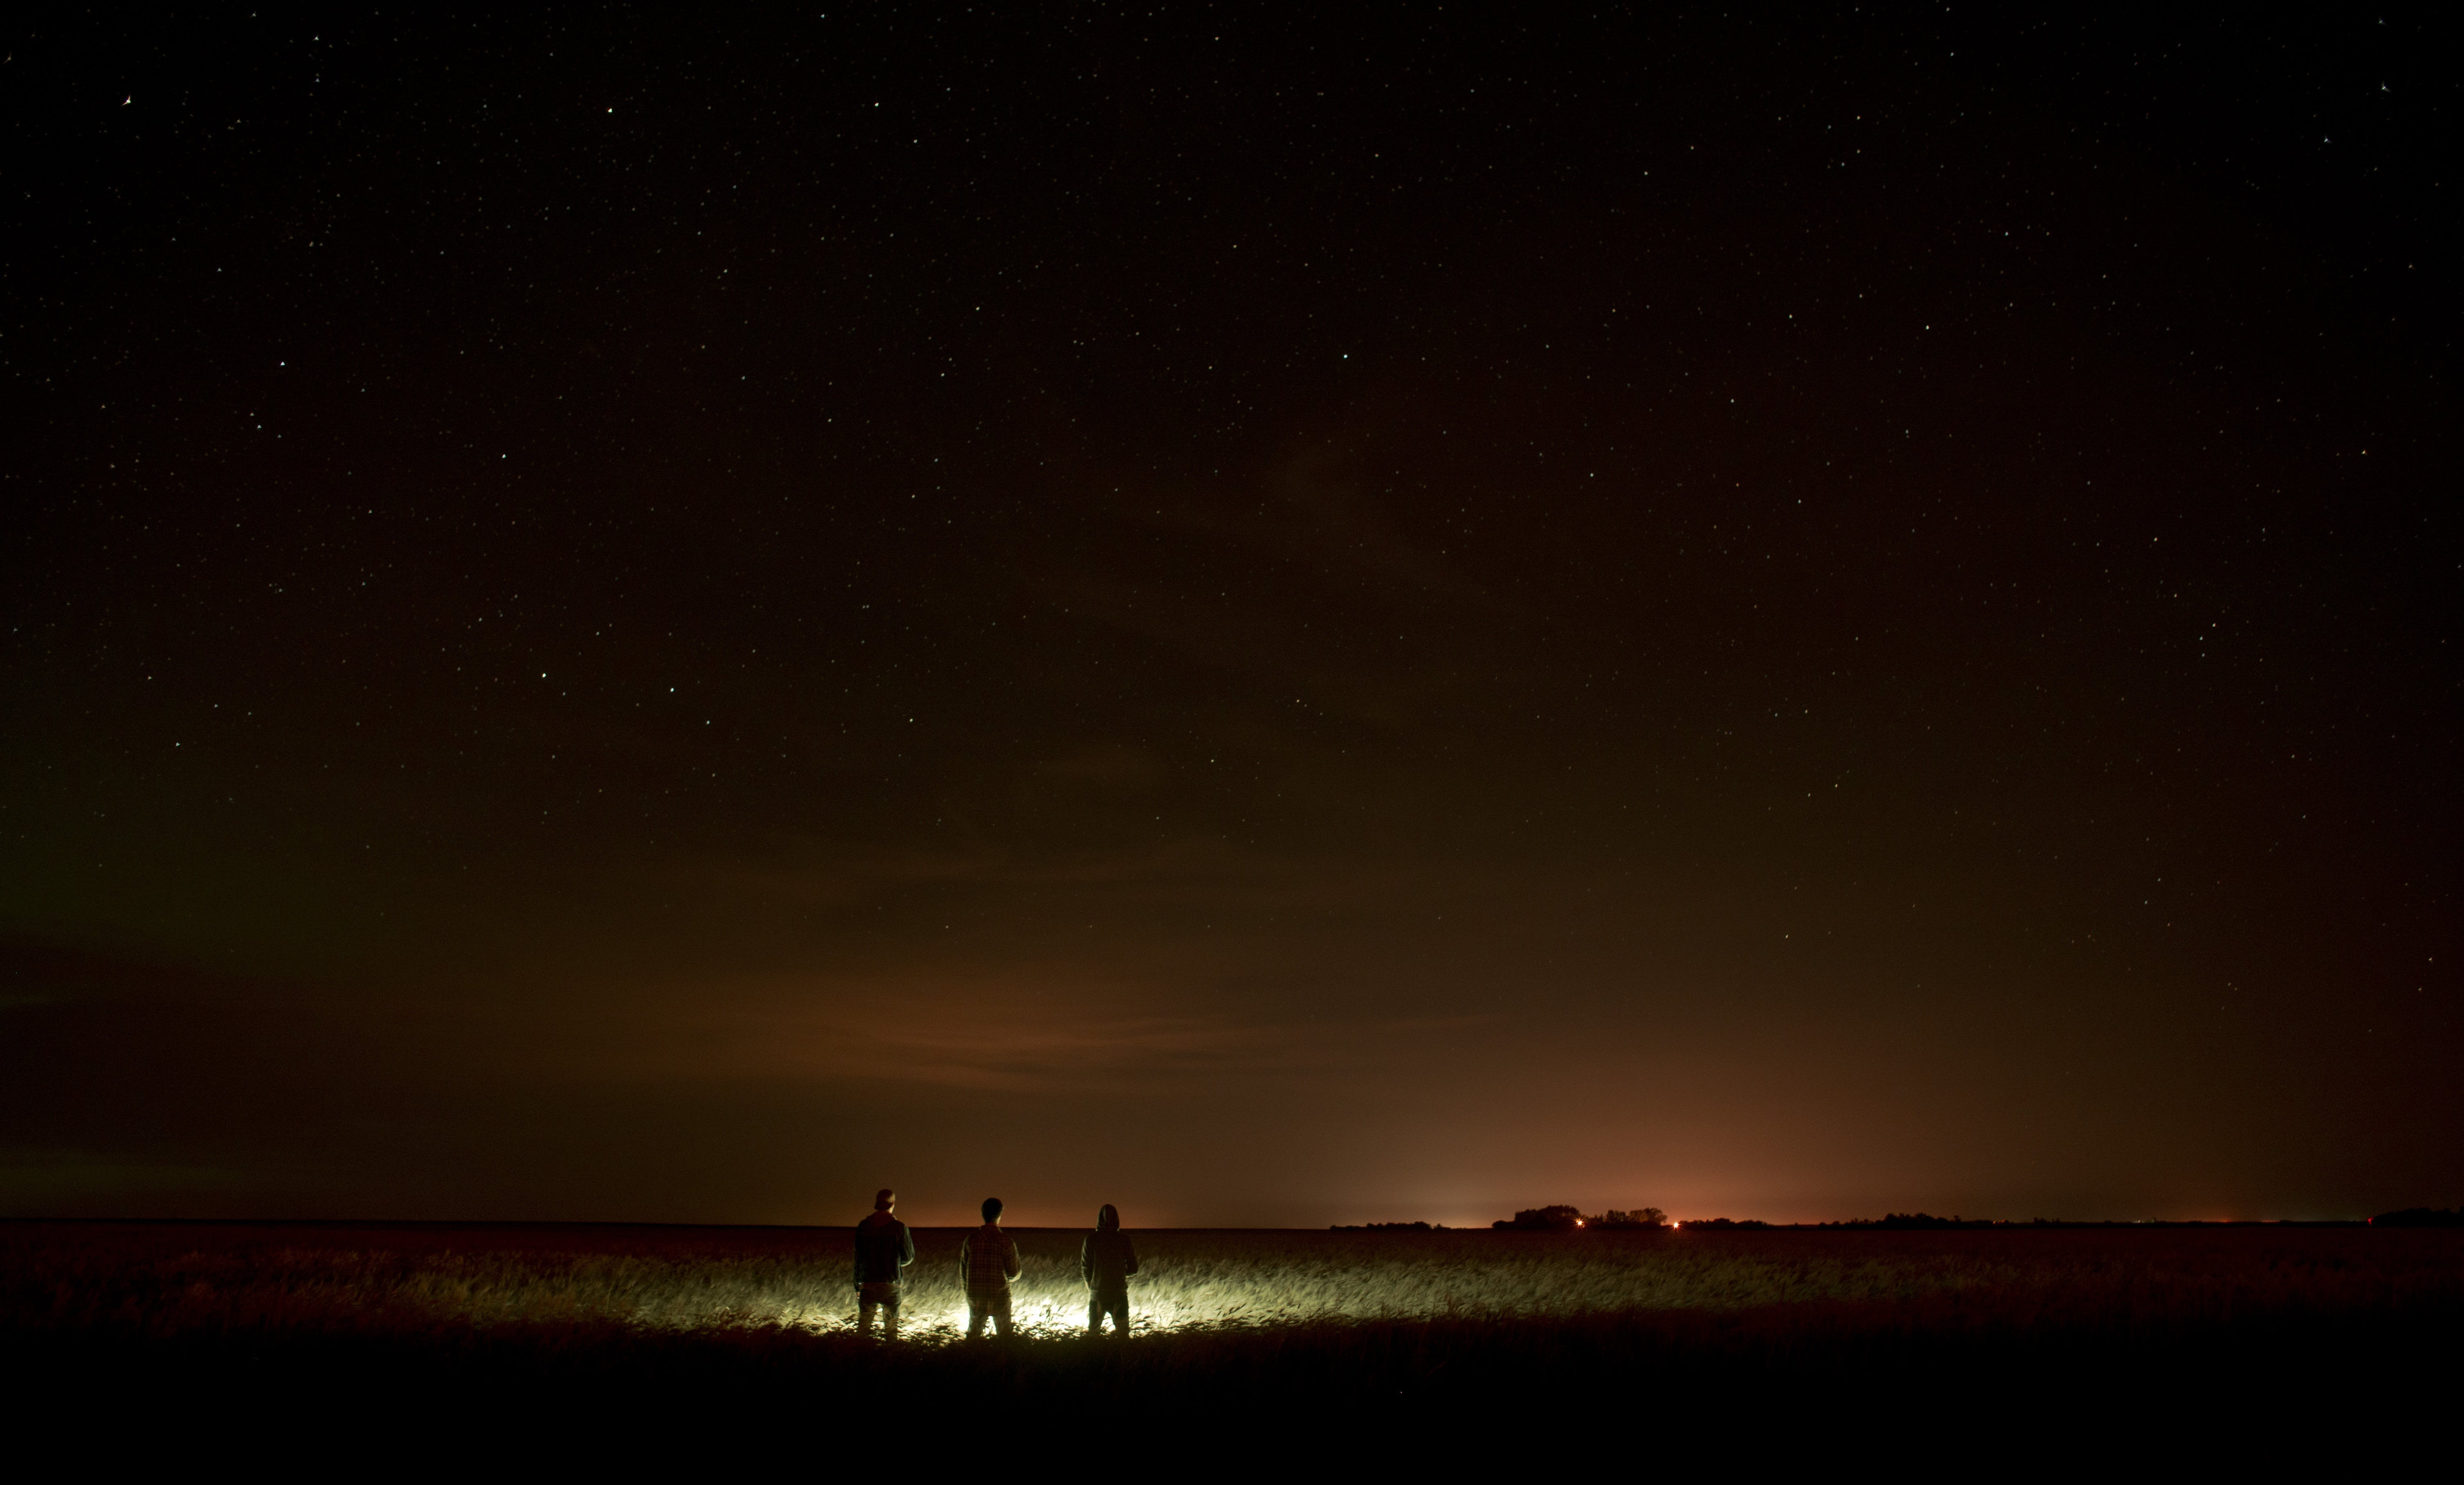 Three People Standing in Front of Lights on Sand during Nighttime